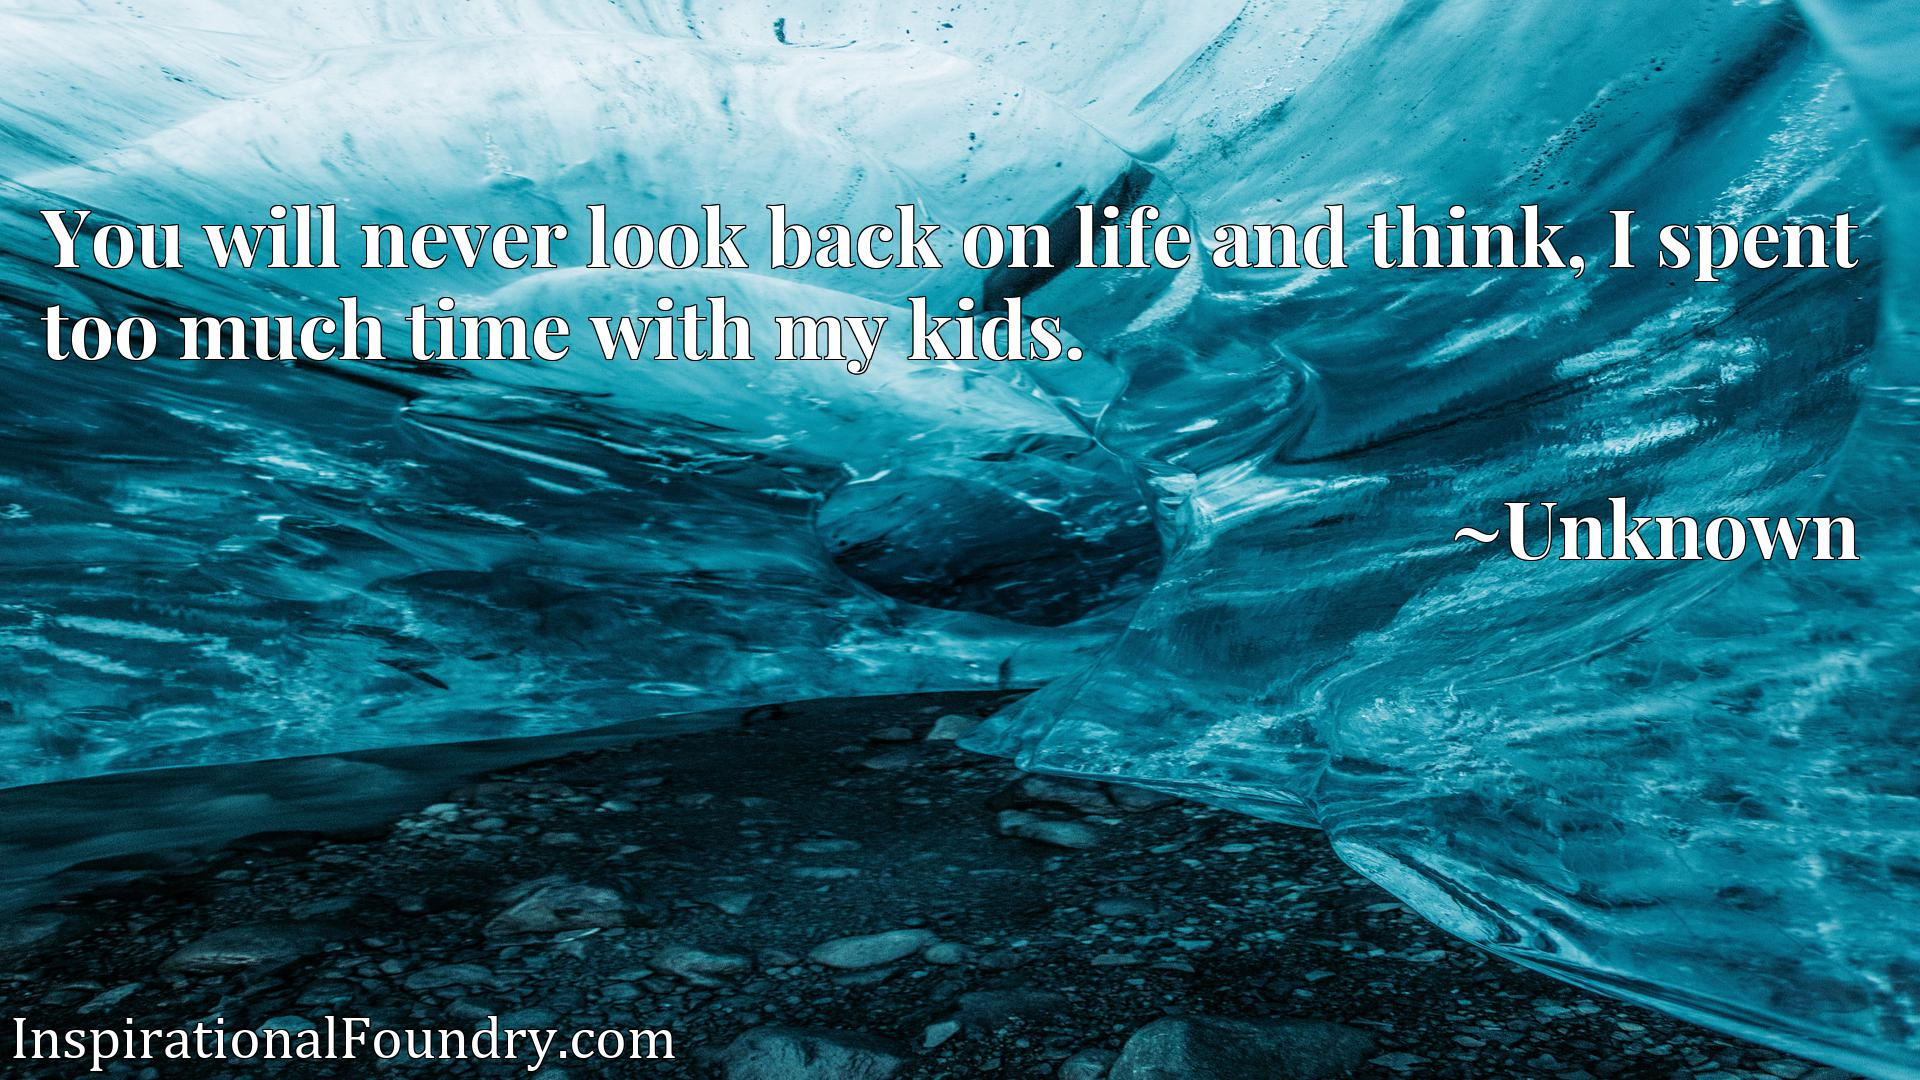 You will never look back on life and think, I spent too much time with my kidsx9d.